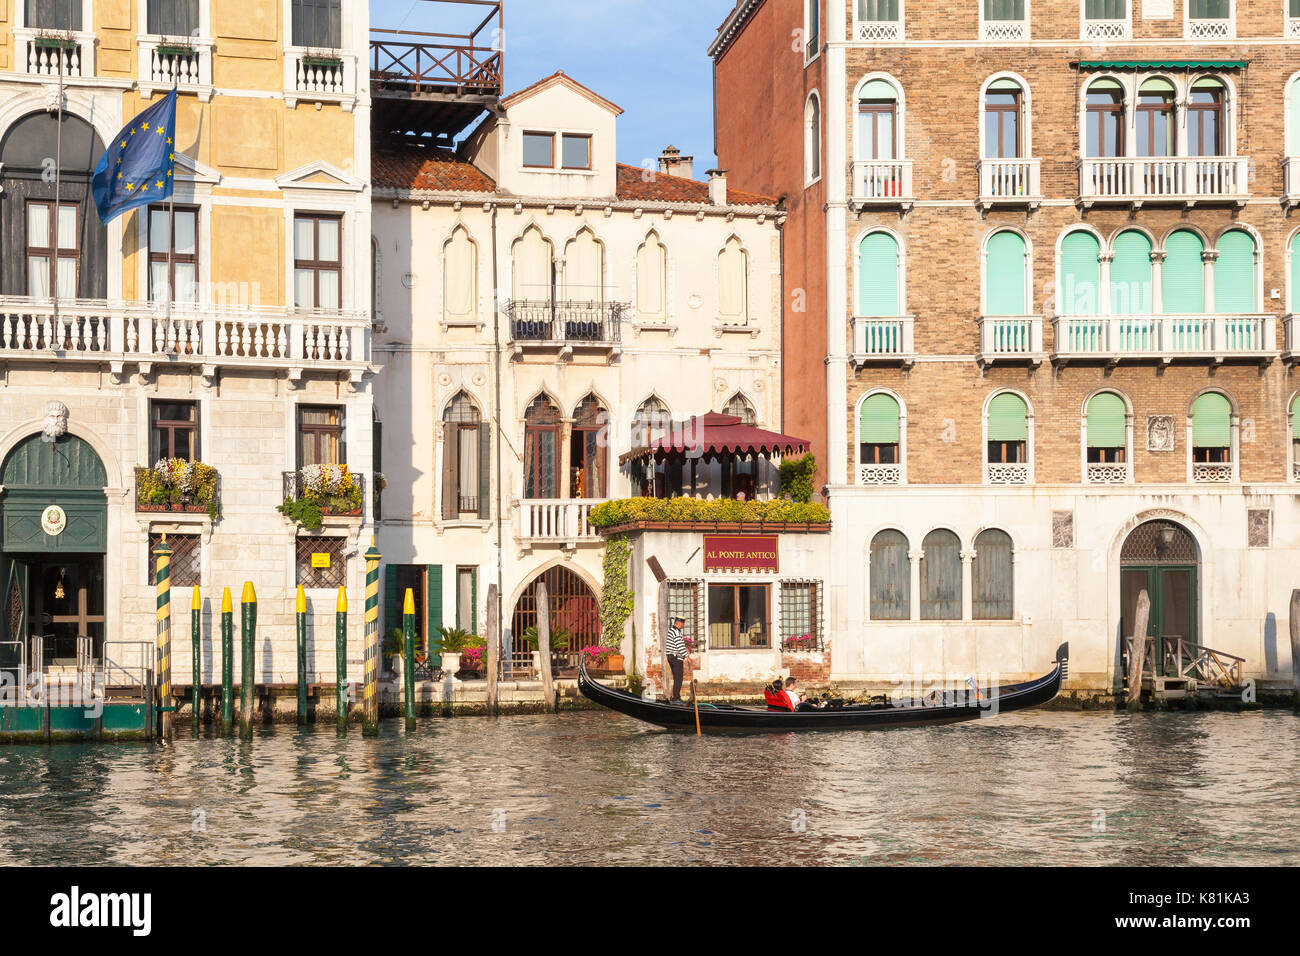 Romantic tour on the Grand Canal in a gondola in evening light, Venice, Italy in front of the Al Ponte Antico hotel in Cannaregio - Stock Image